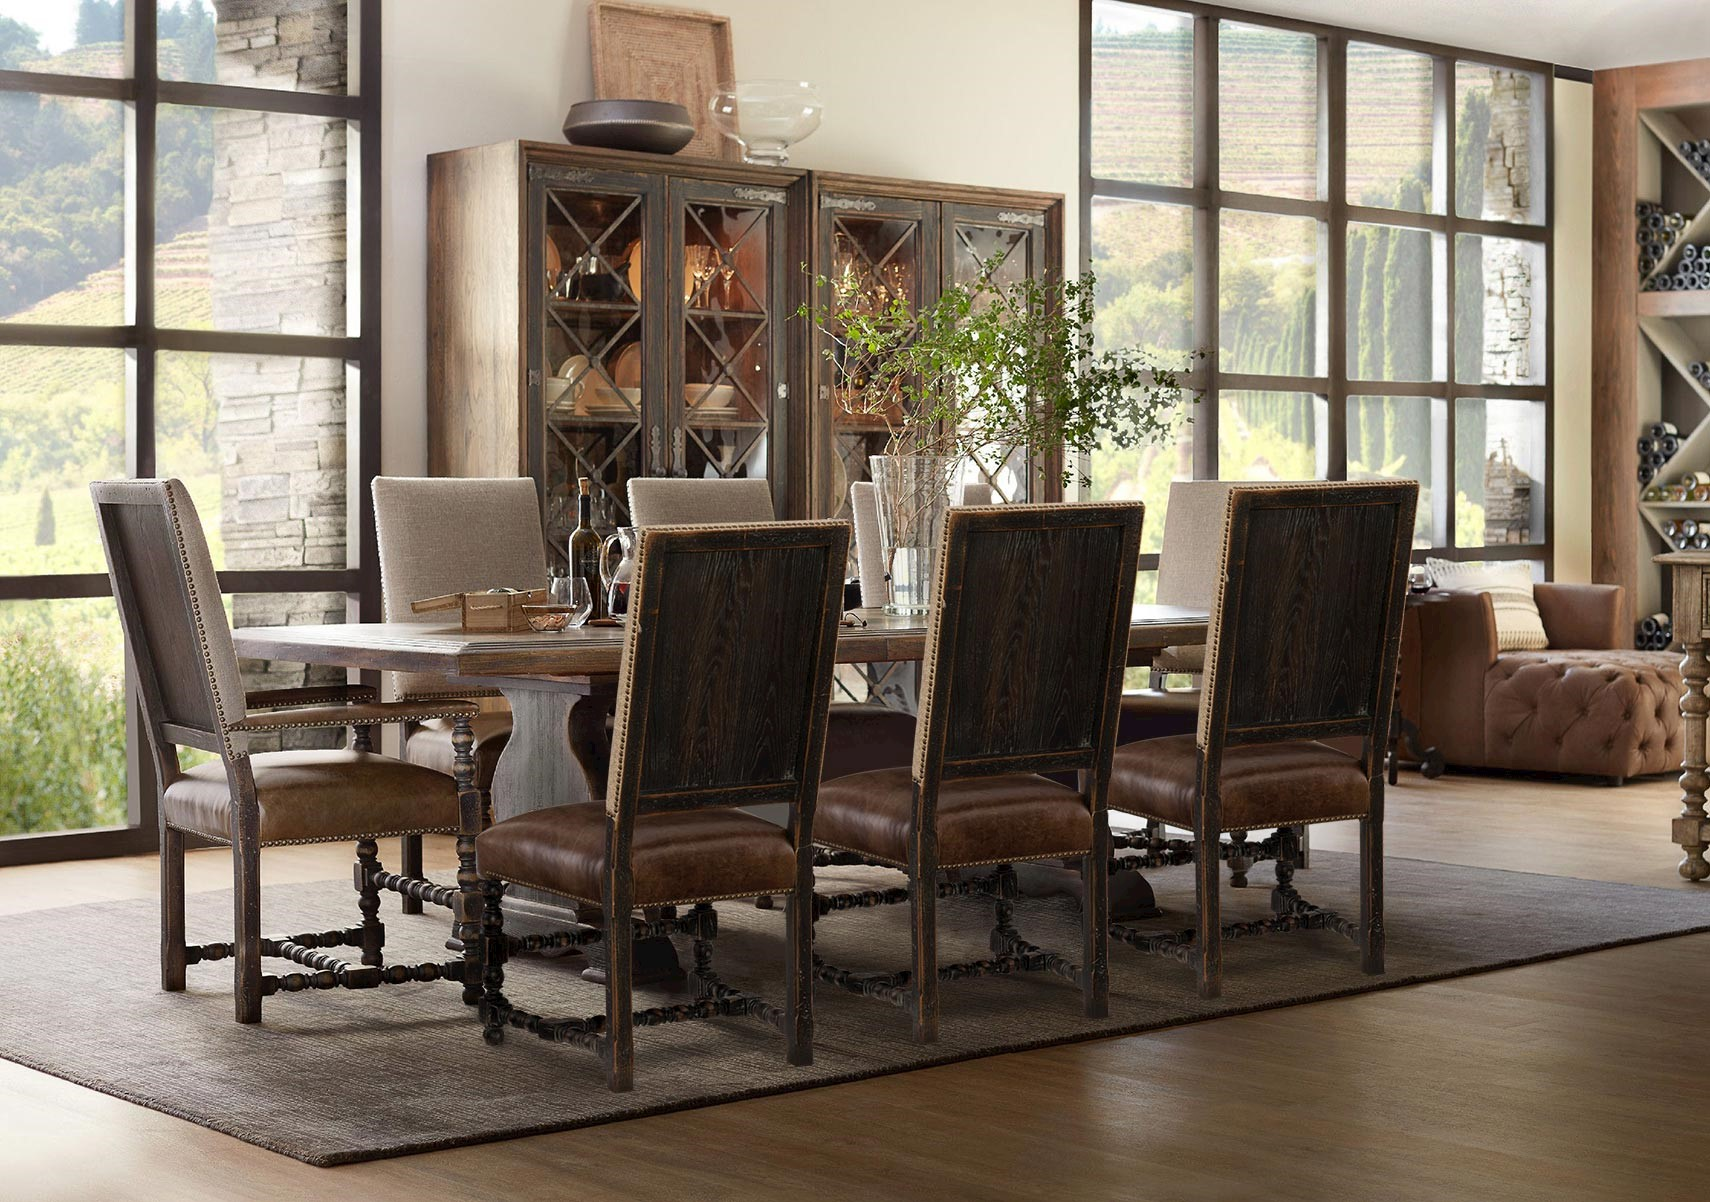 Lacks Hill Country 9 Pc Dining Set, Hill Country Dining Room Furniture